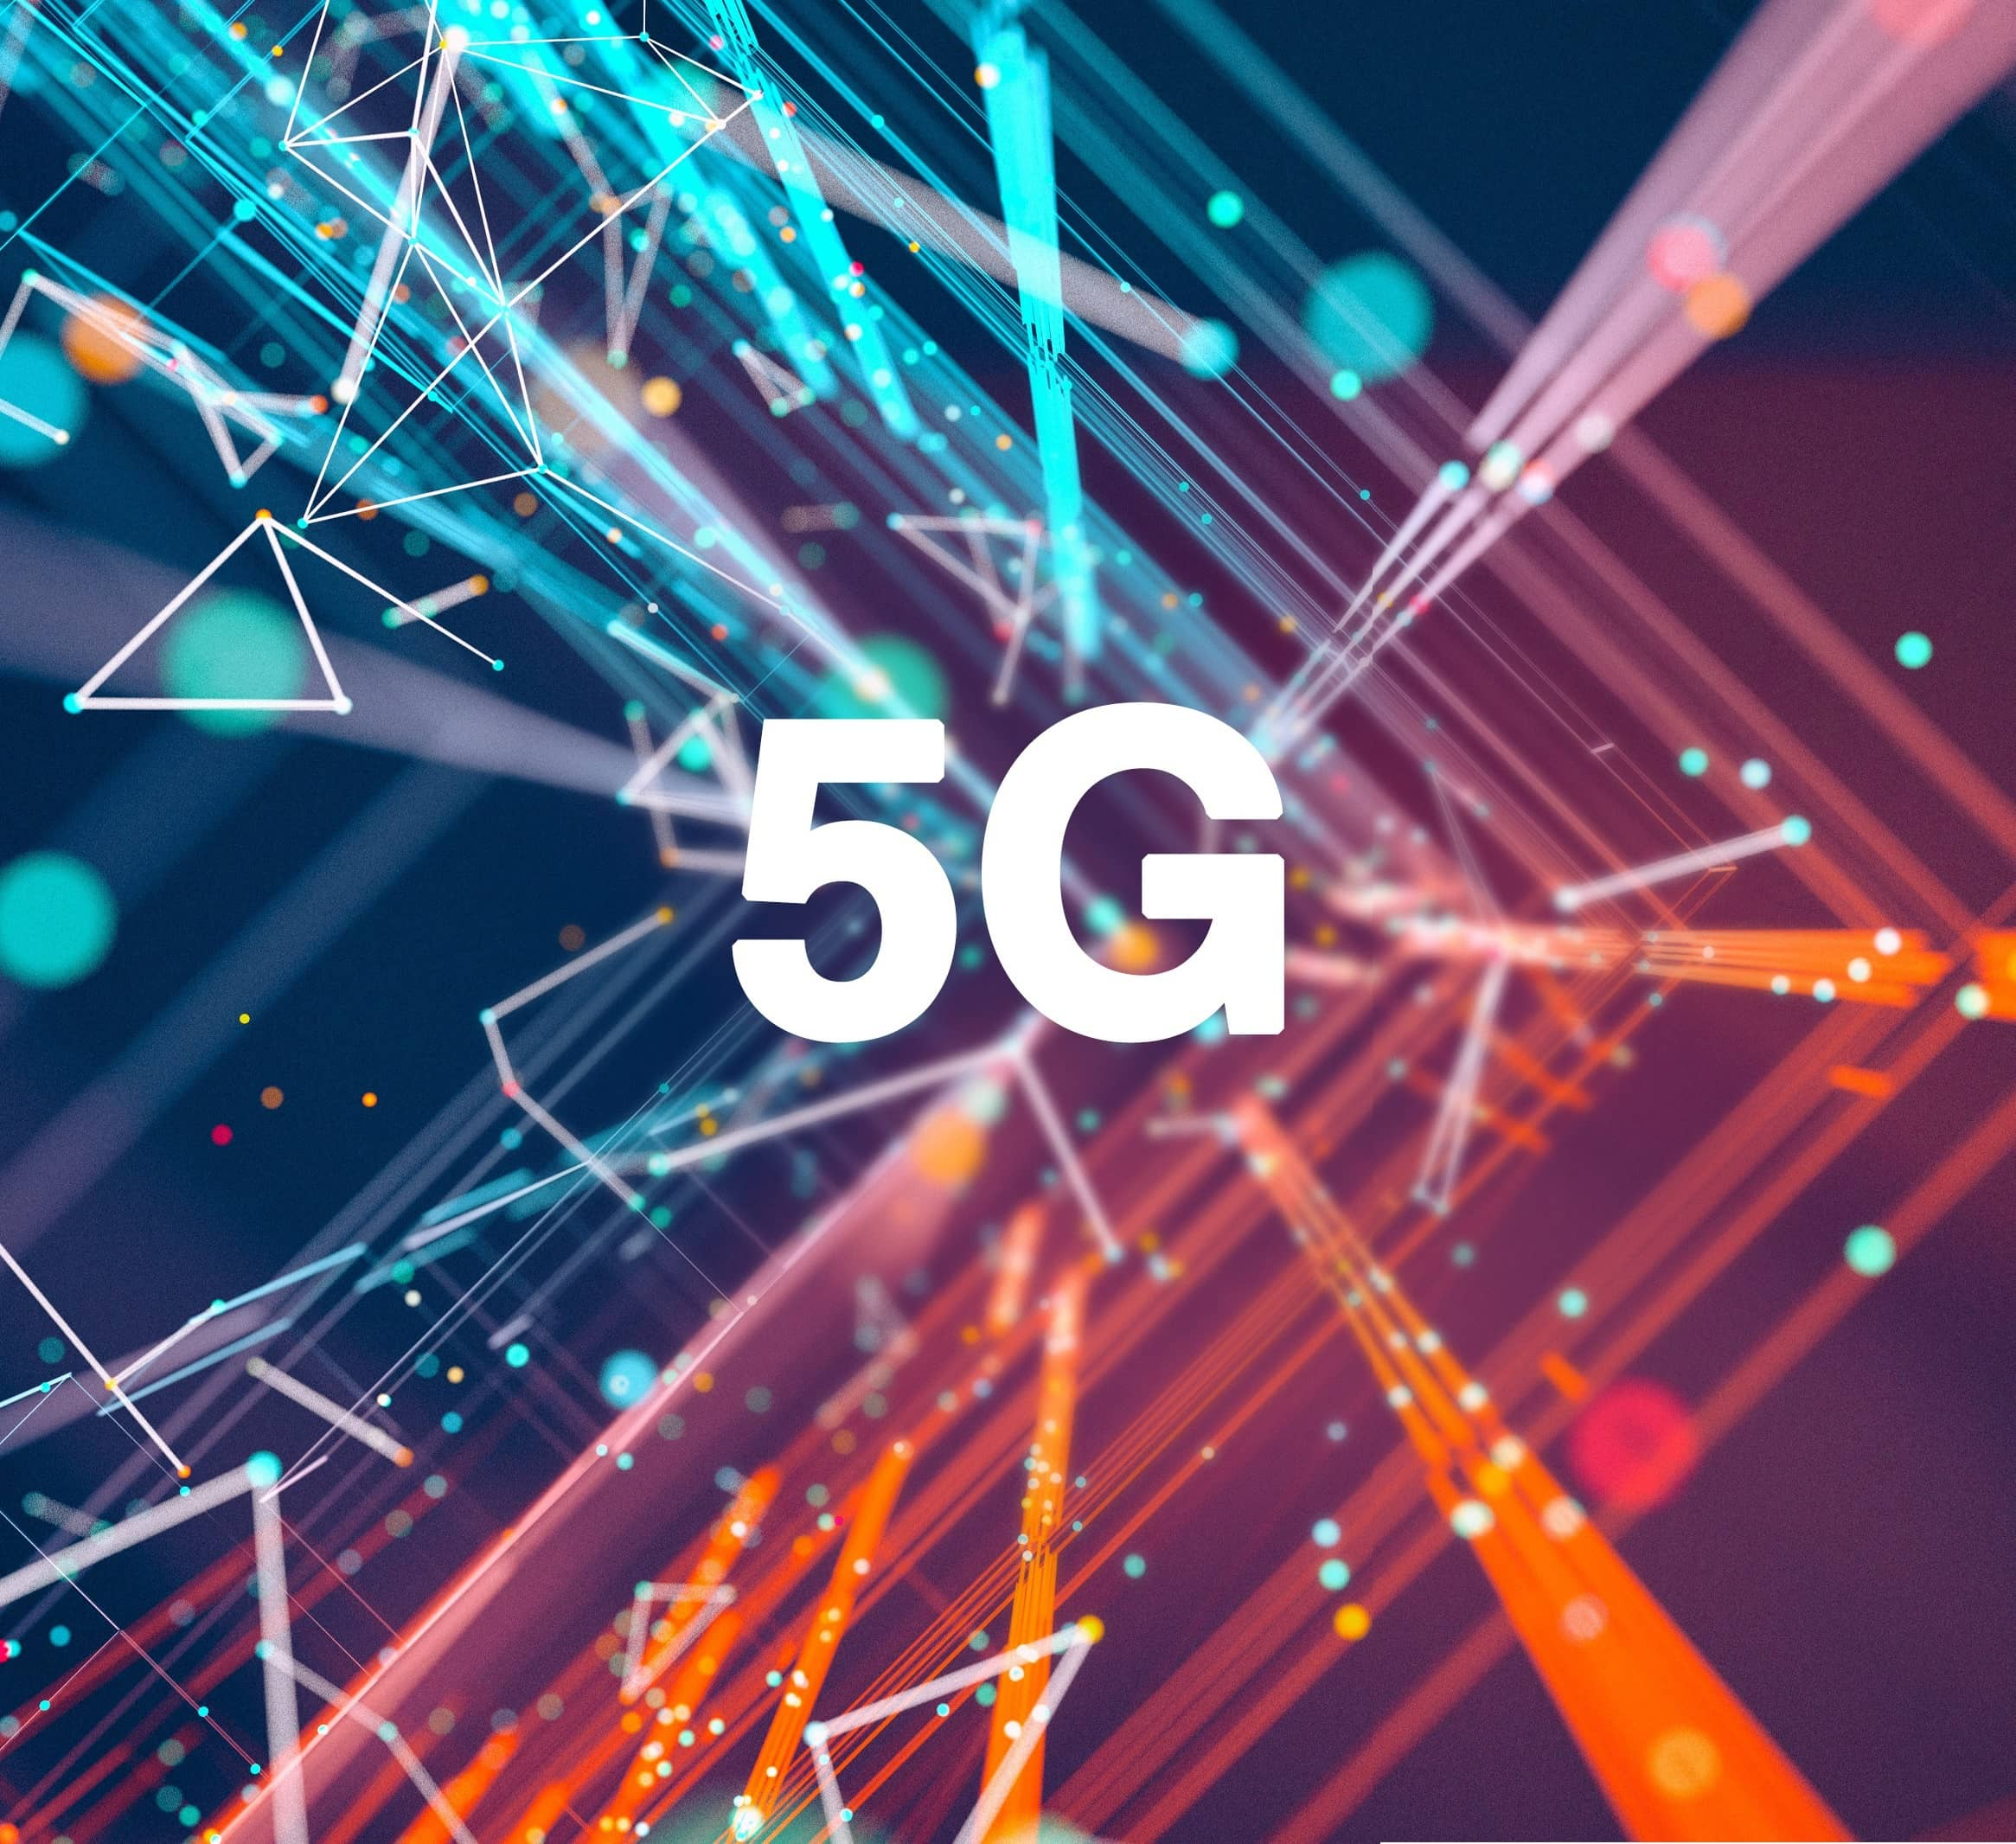 THE PROMISE OF 5G WIRELESS SPEED, HYPE, RISK